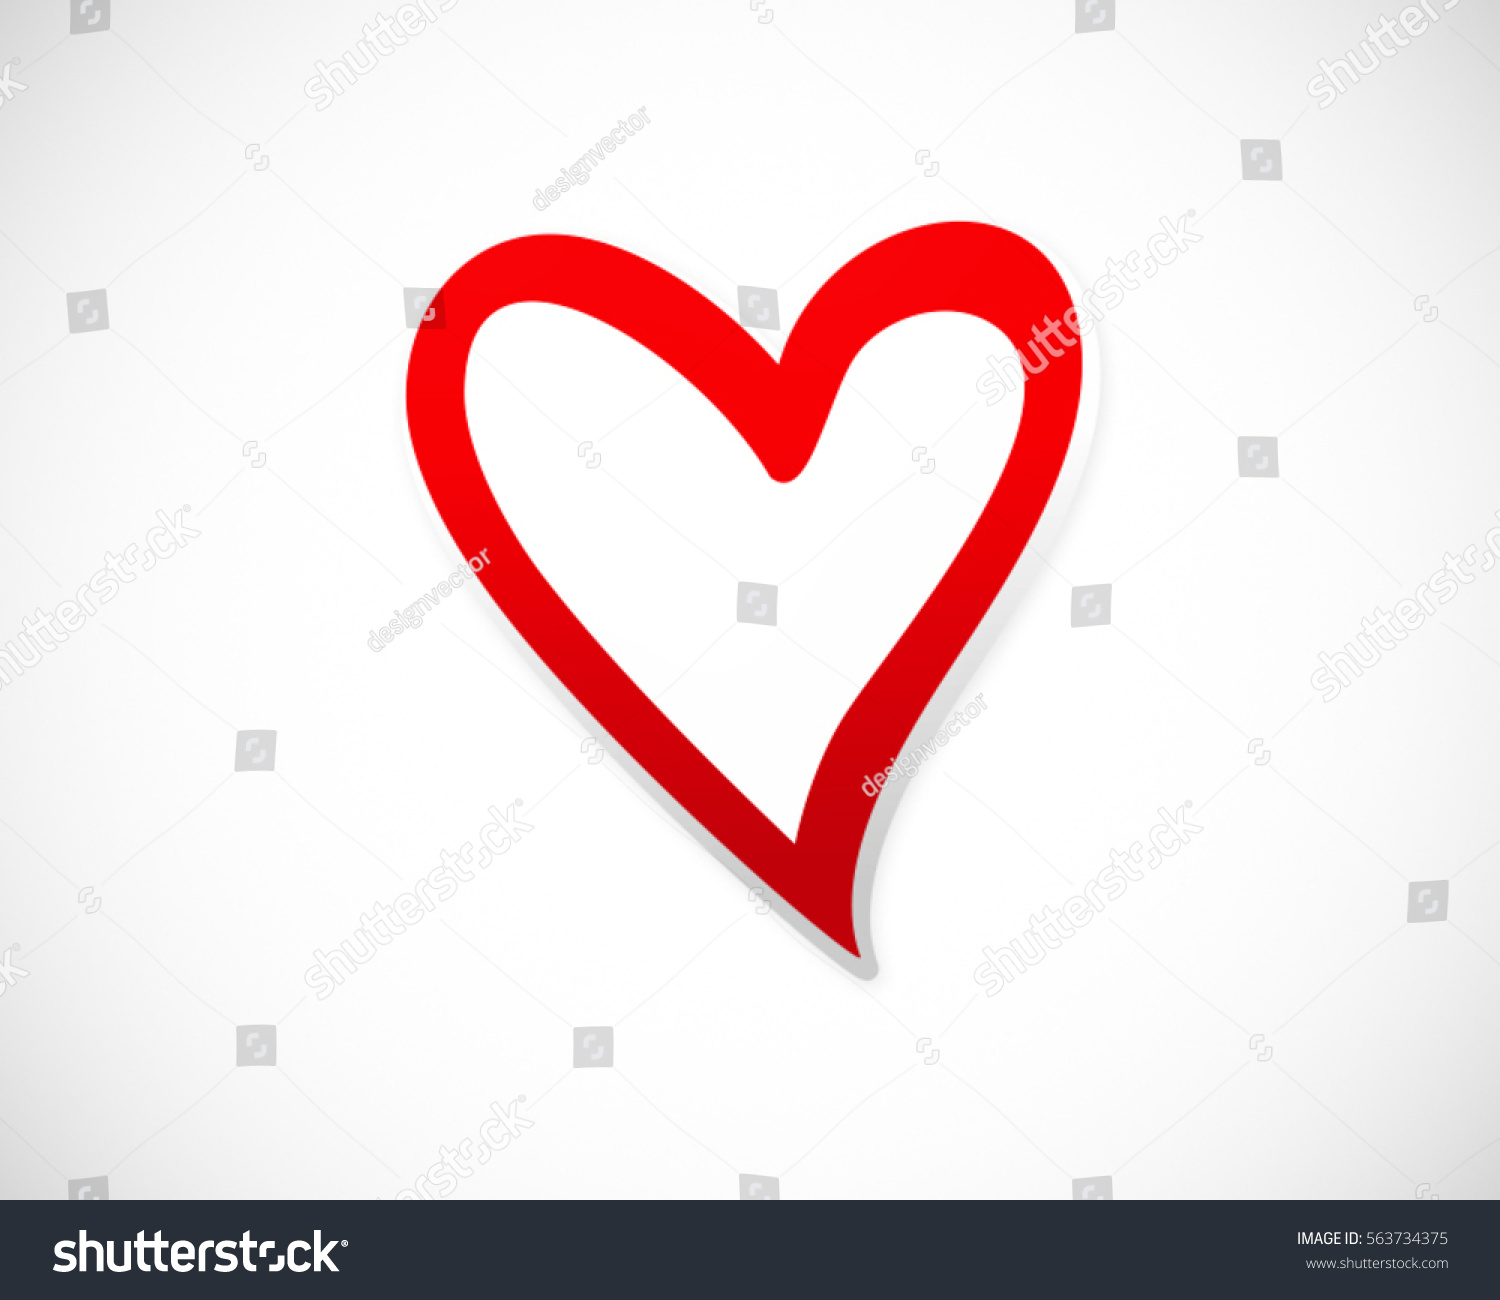 Love Heart Valentine Vector Logo Abstract Stock Vector ...